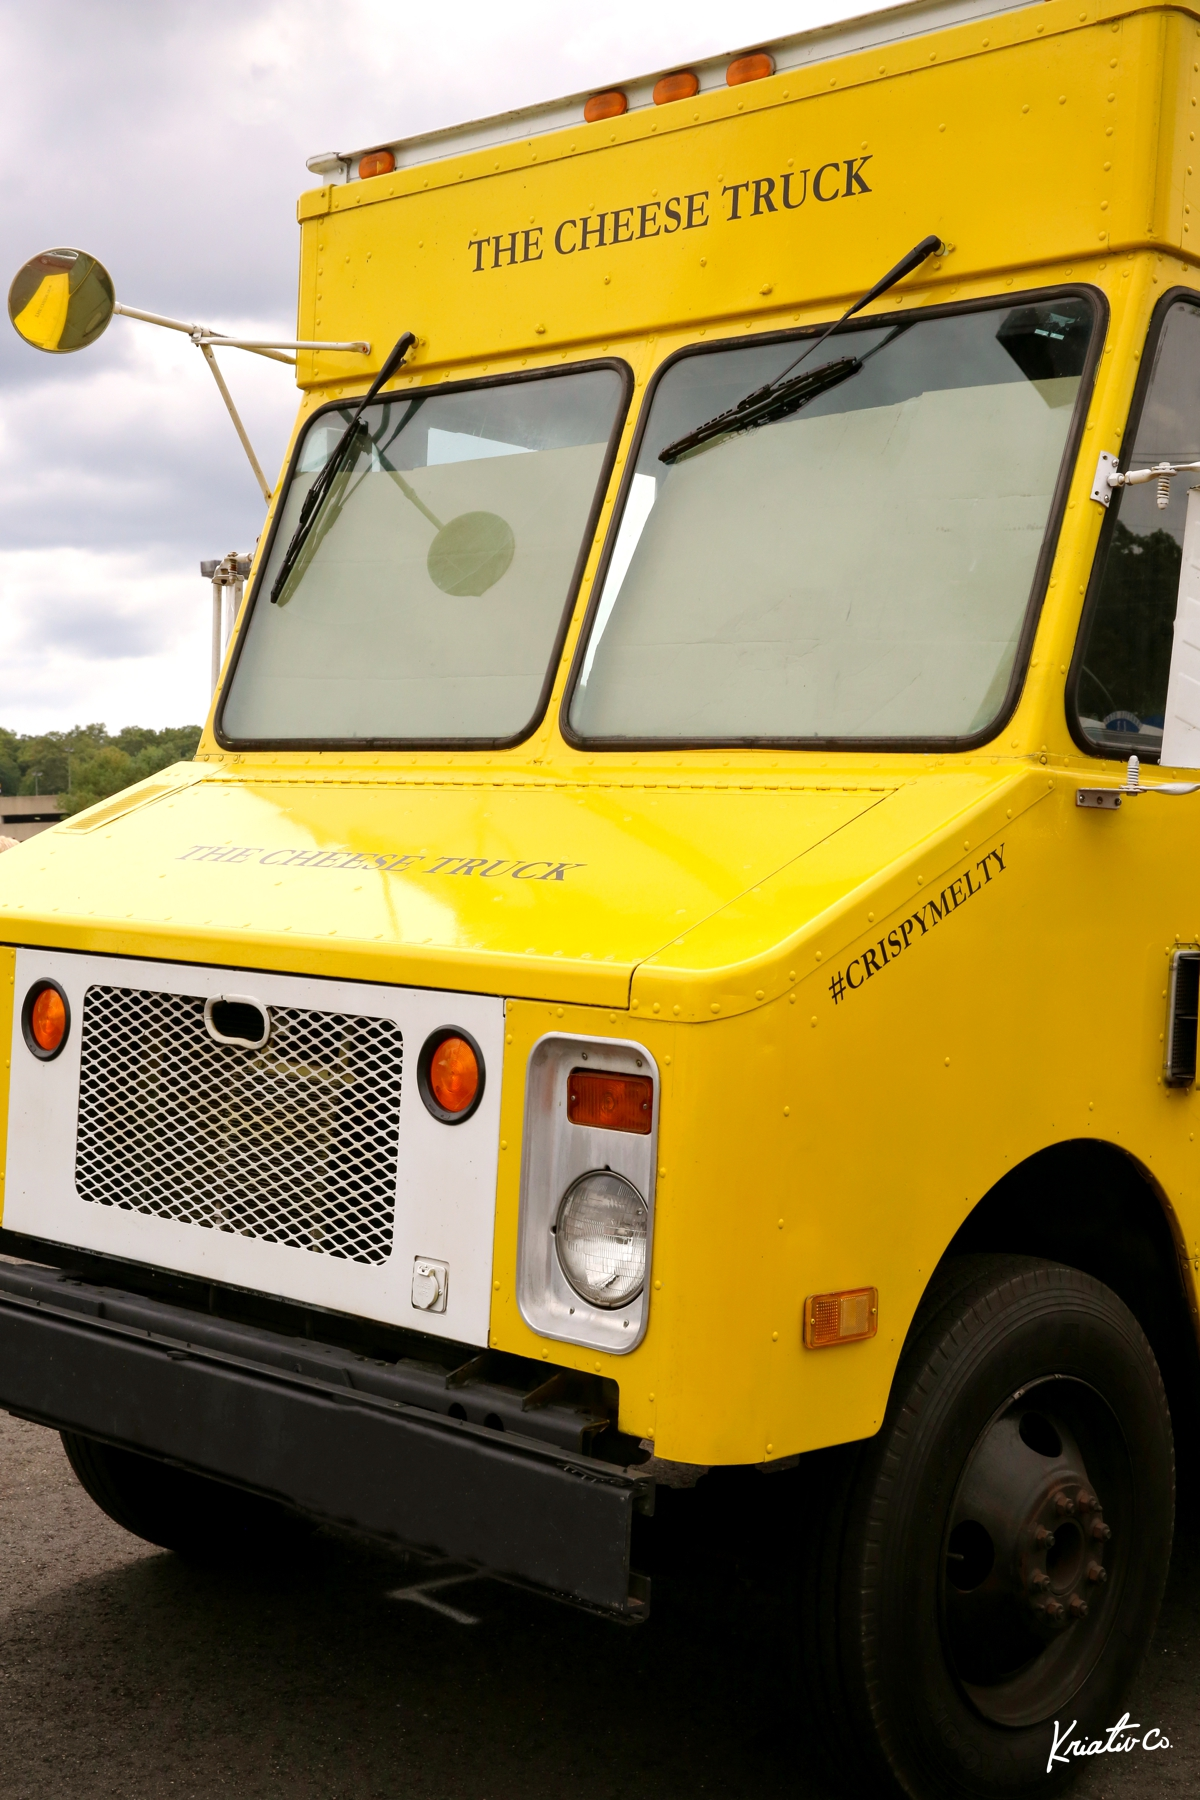 Kriativ_Co_Food_Commercial_Photography_CheeseTruck_Blog_04.jpg